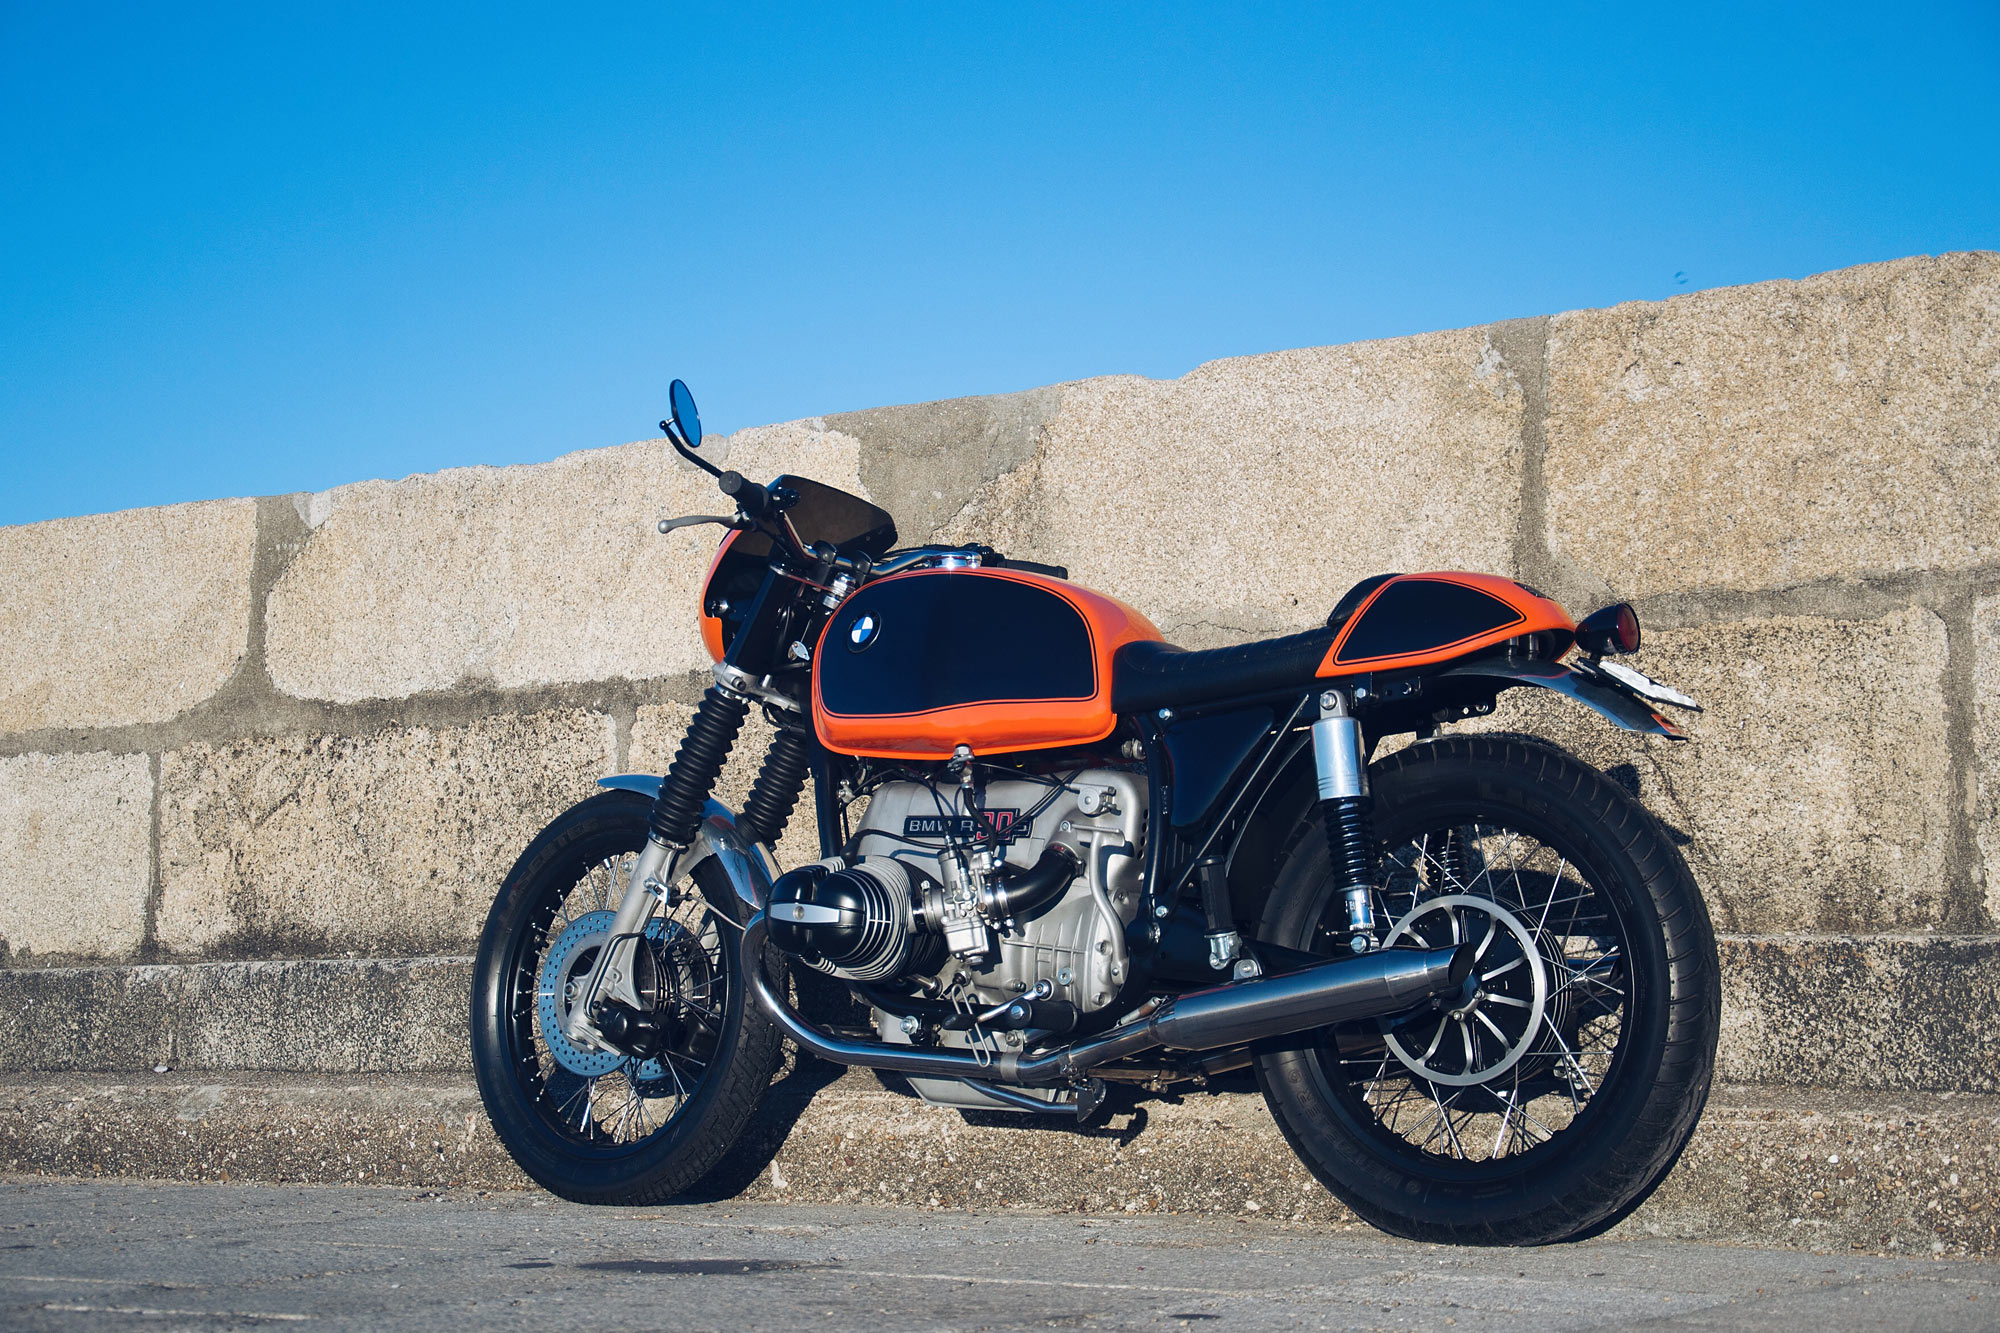 """""""Oporto Motor Works is my creation,"""" says shop owner, Steffen. """"I dreamt it up it for my customising and restoration projects. But it's not just 'another ..."""